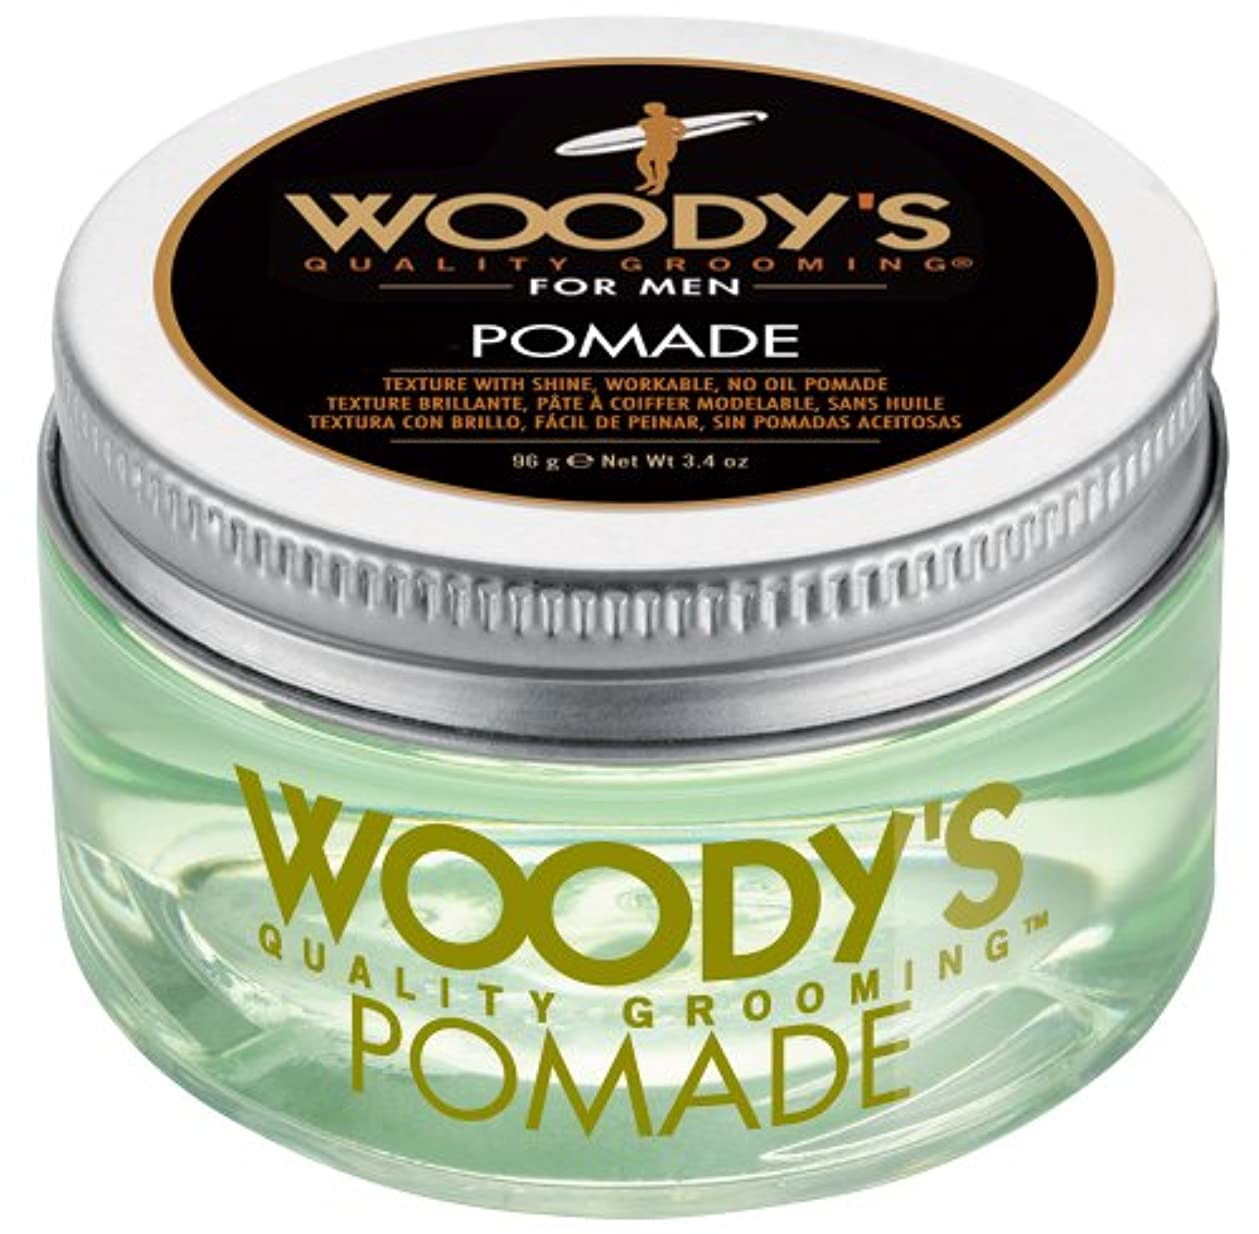 売るパワーセルロック解除Woody's Pomade for Men, Pomade, 3.4 Ounce